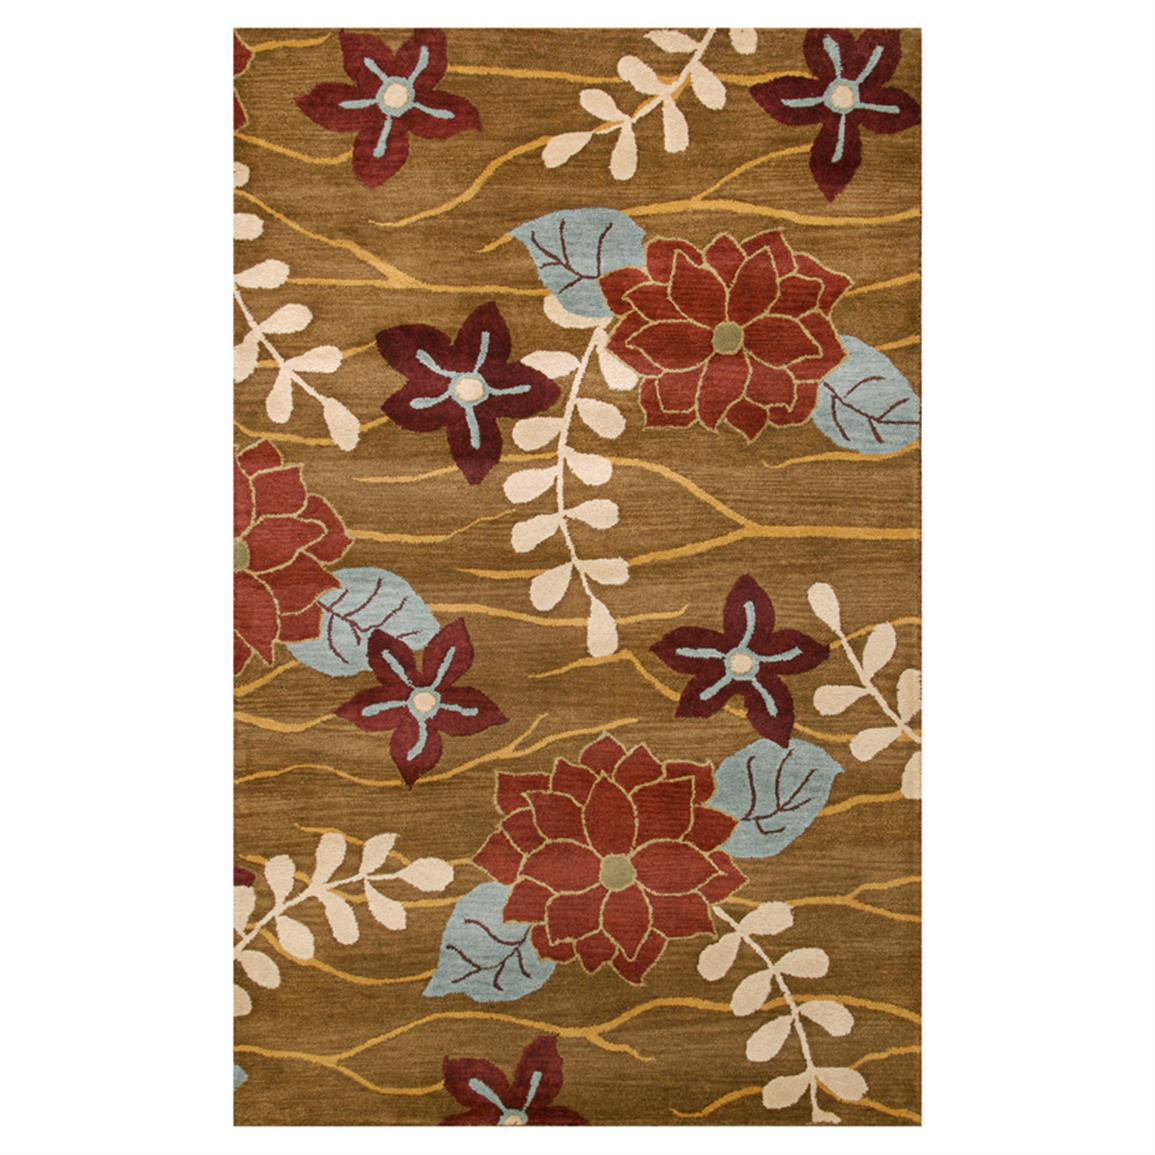 DonnieAnn 5x8 foot Avalon Area Rug, Dark Gold/Flower and Leaf Design